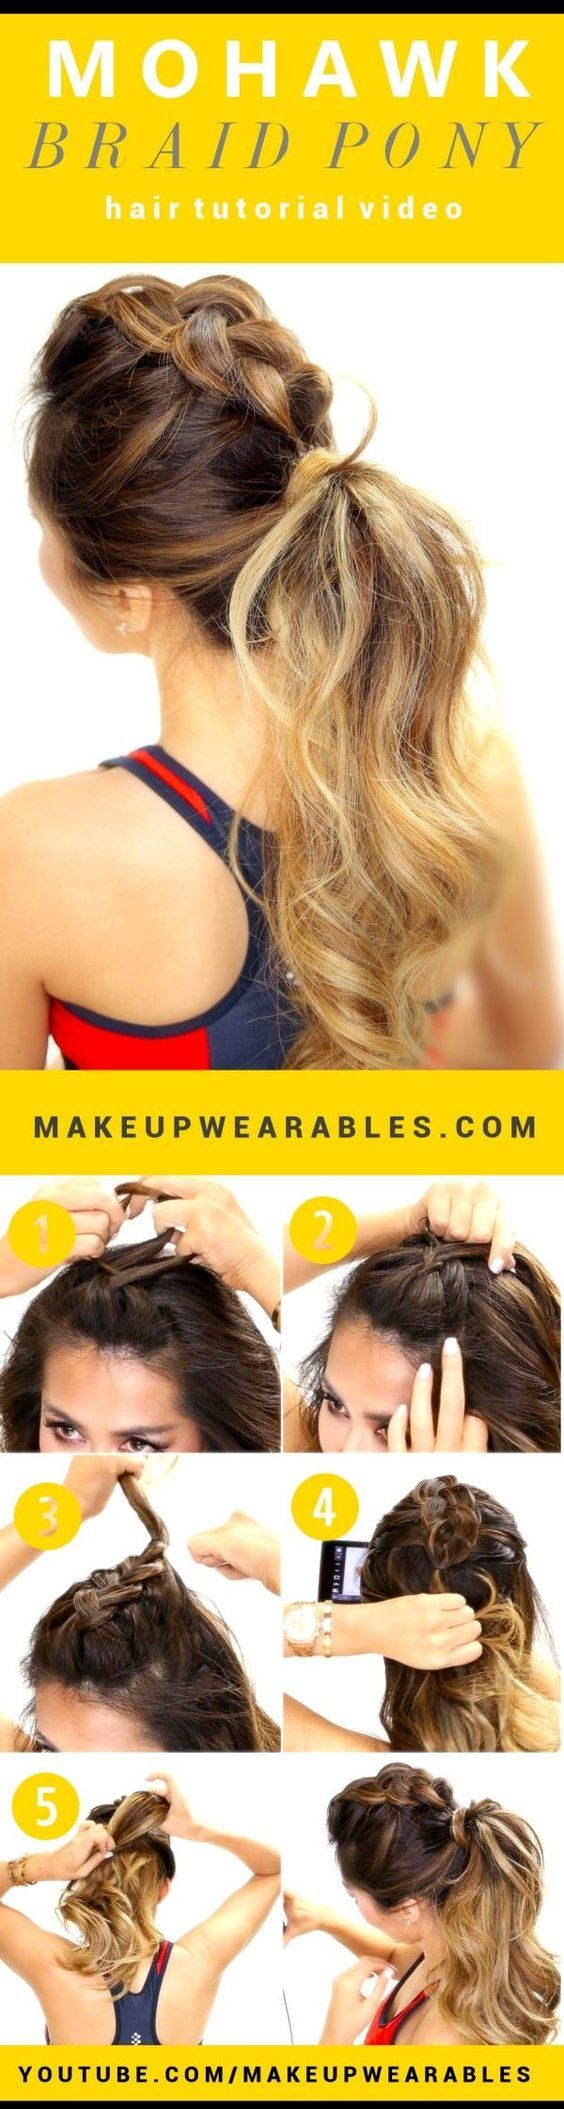 15 Spectacular DIY Hairstyle Ideas For a Busy Morning Made For Less Than 5 Minut... - http://1pic4u.com/2015/09/06/15-spectacular-diy-hairstyle-ideas-for-a-busy-morning-made-for-less-than-5-minut/